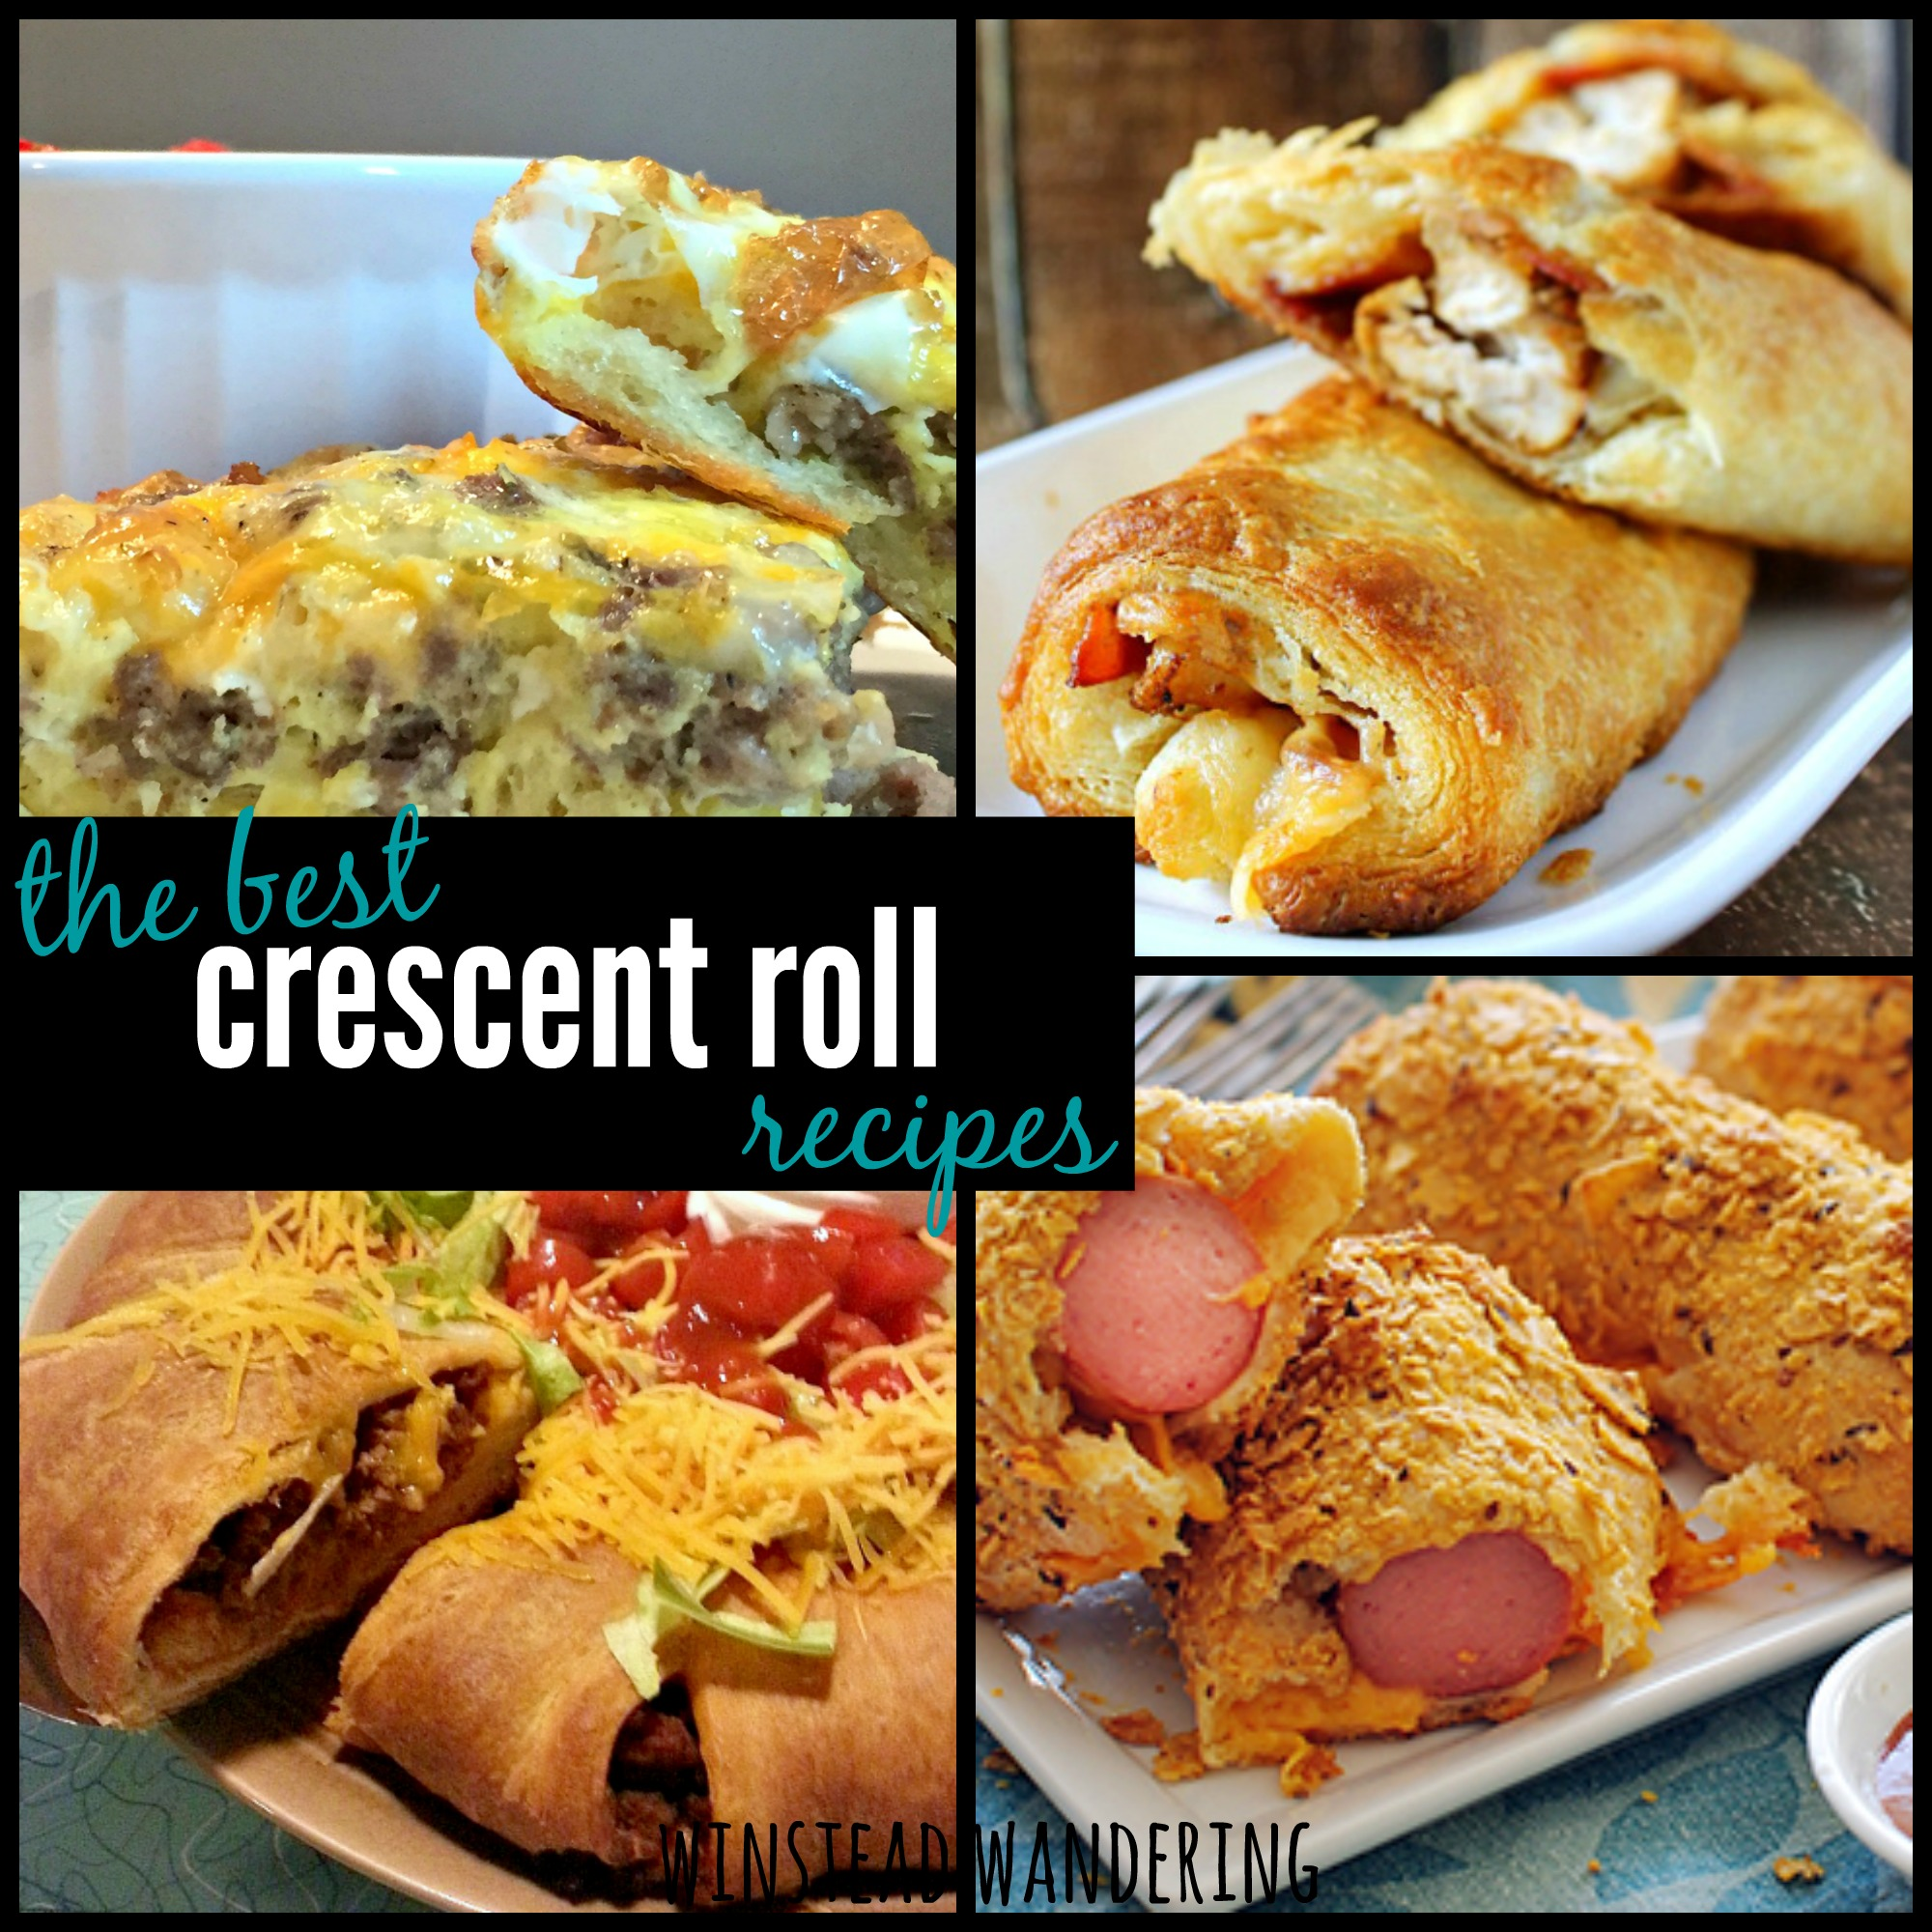 the best crescent roll recipes | winstead wandering